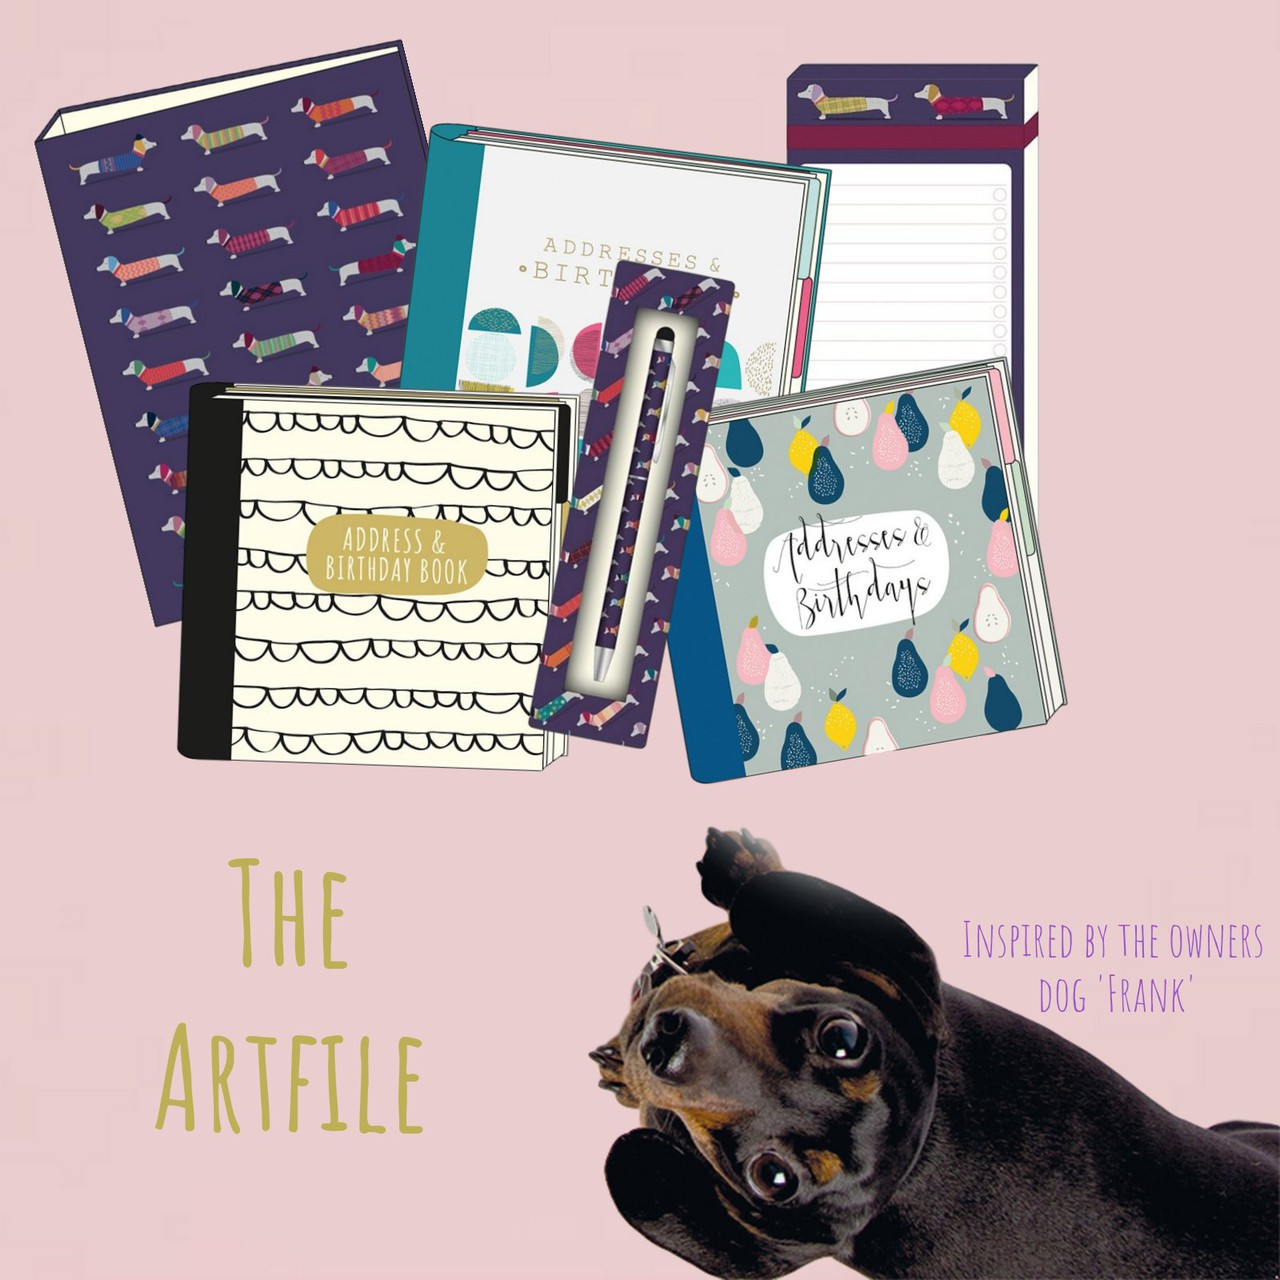 The artfile sausage dog stationery